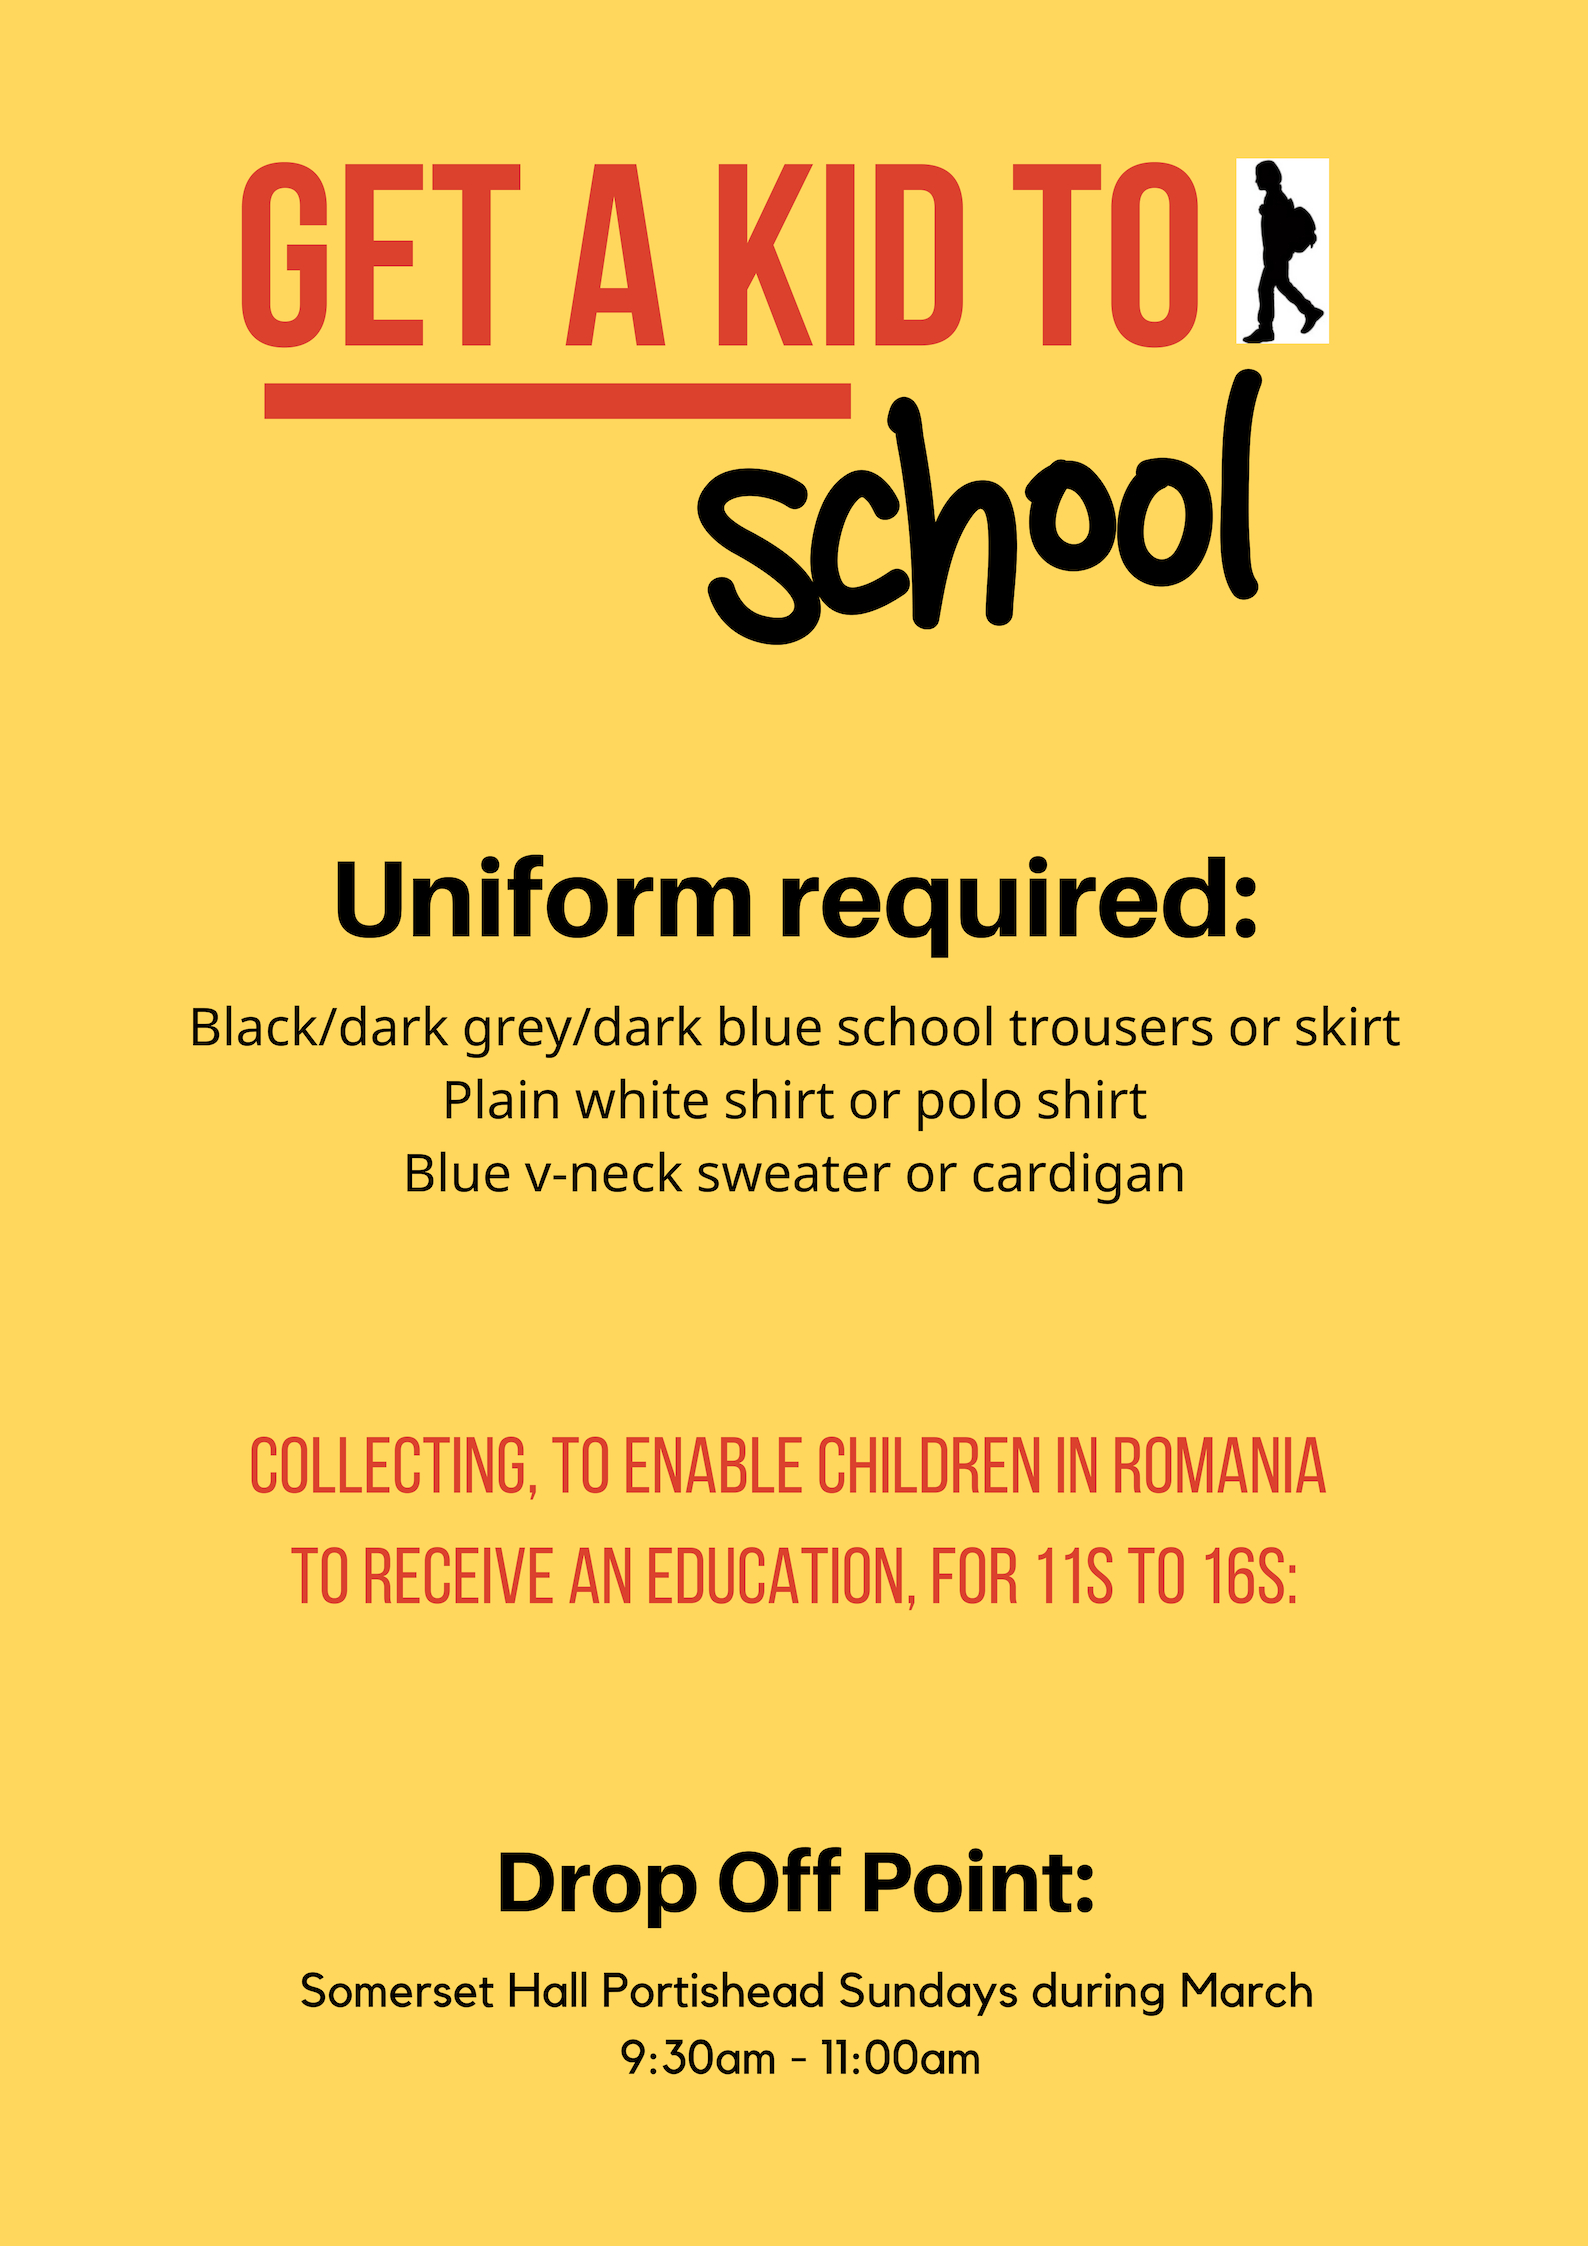 """""""Providing a uniform & backpack gives a child an opportunity to be educated"""". -"""